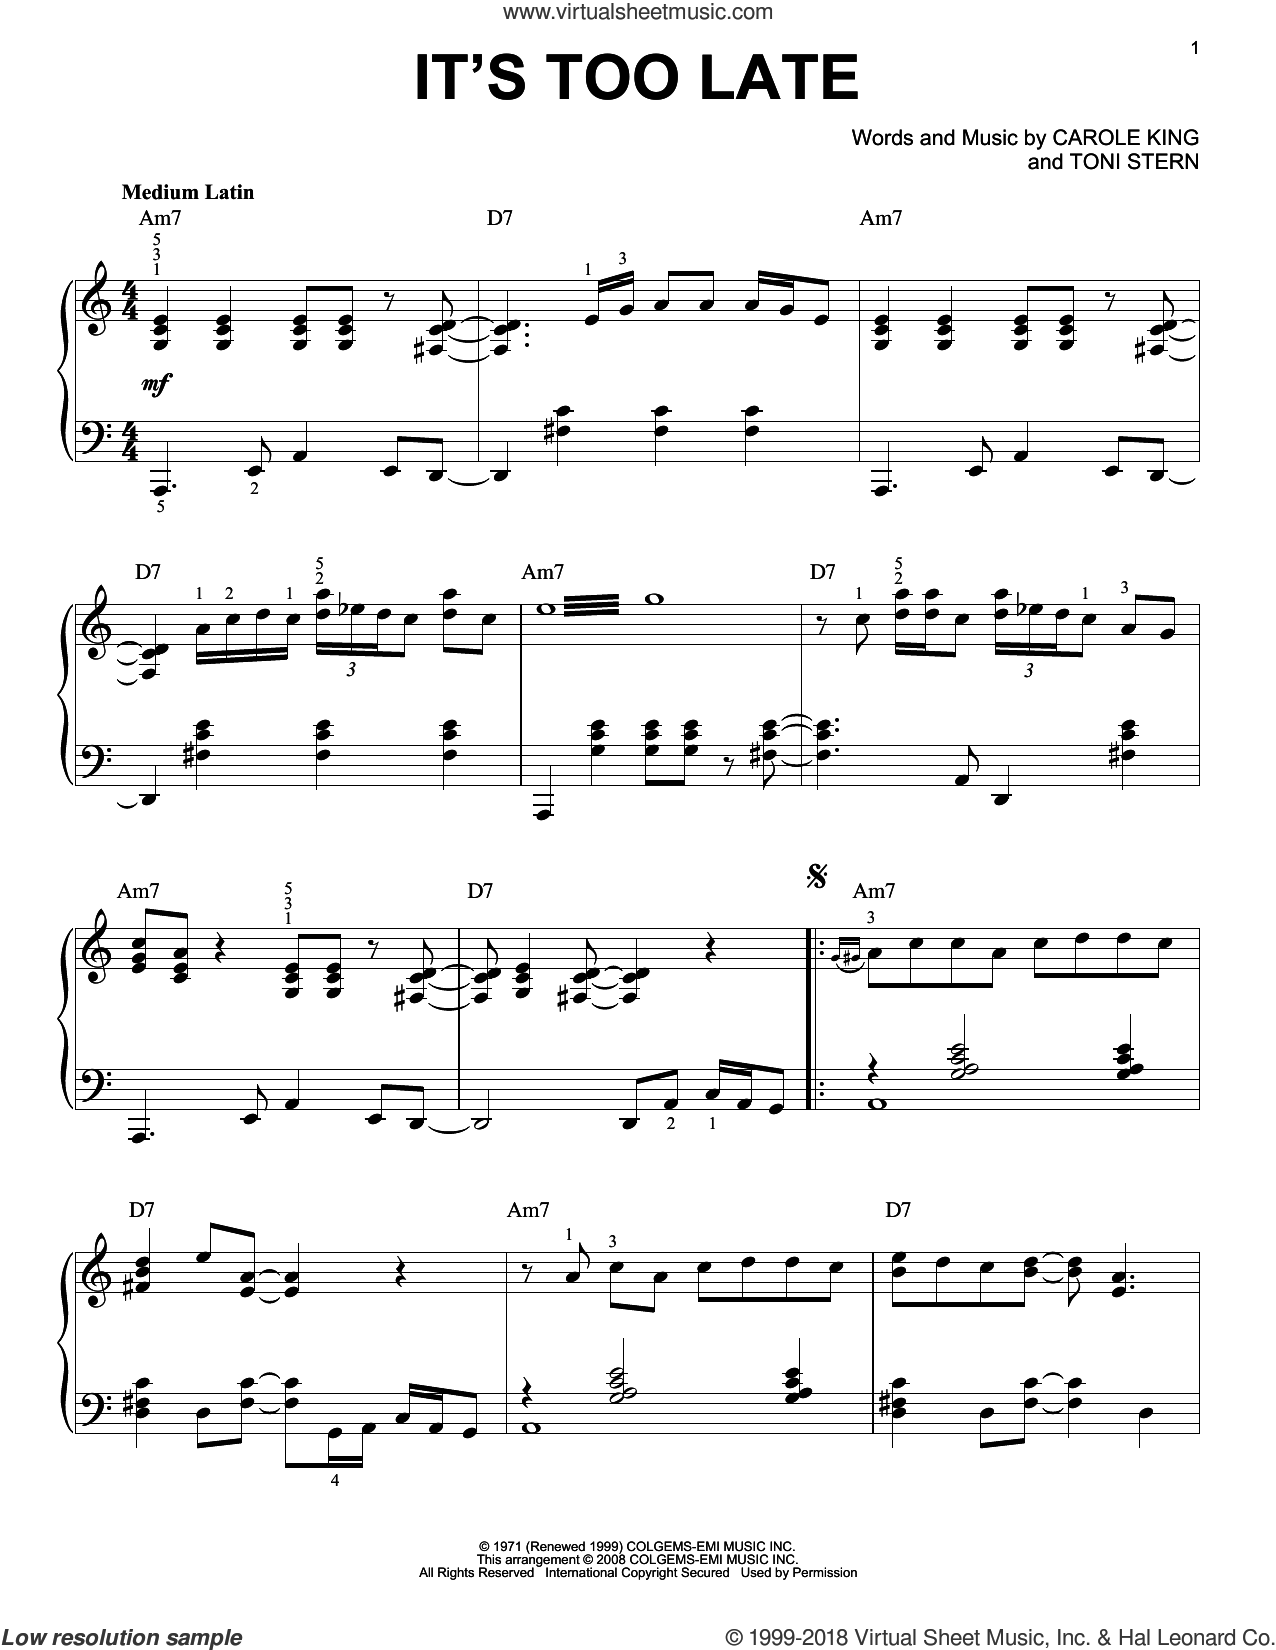 It's Too Late sheet music for piano solo by Carole King and Toni Stern, intermediate skill level